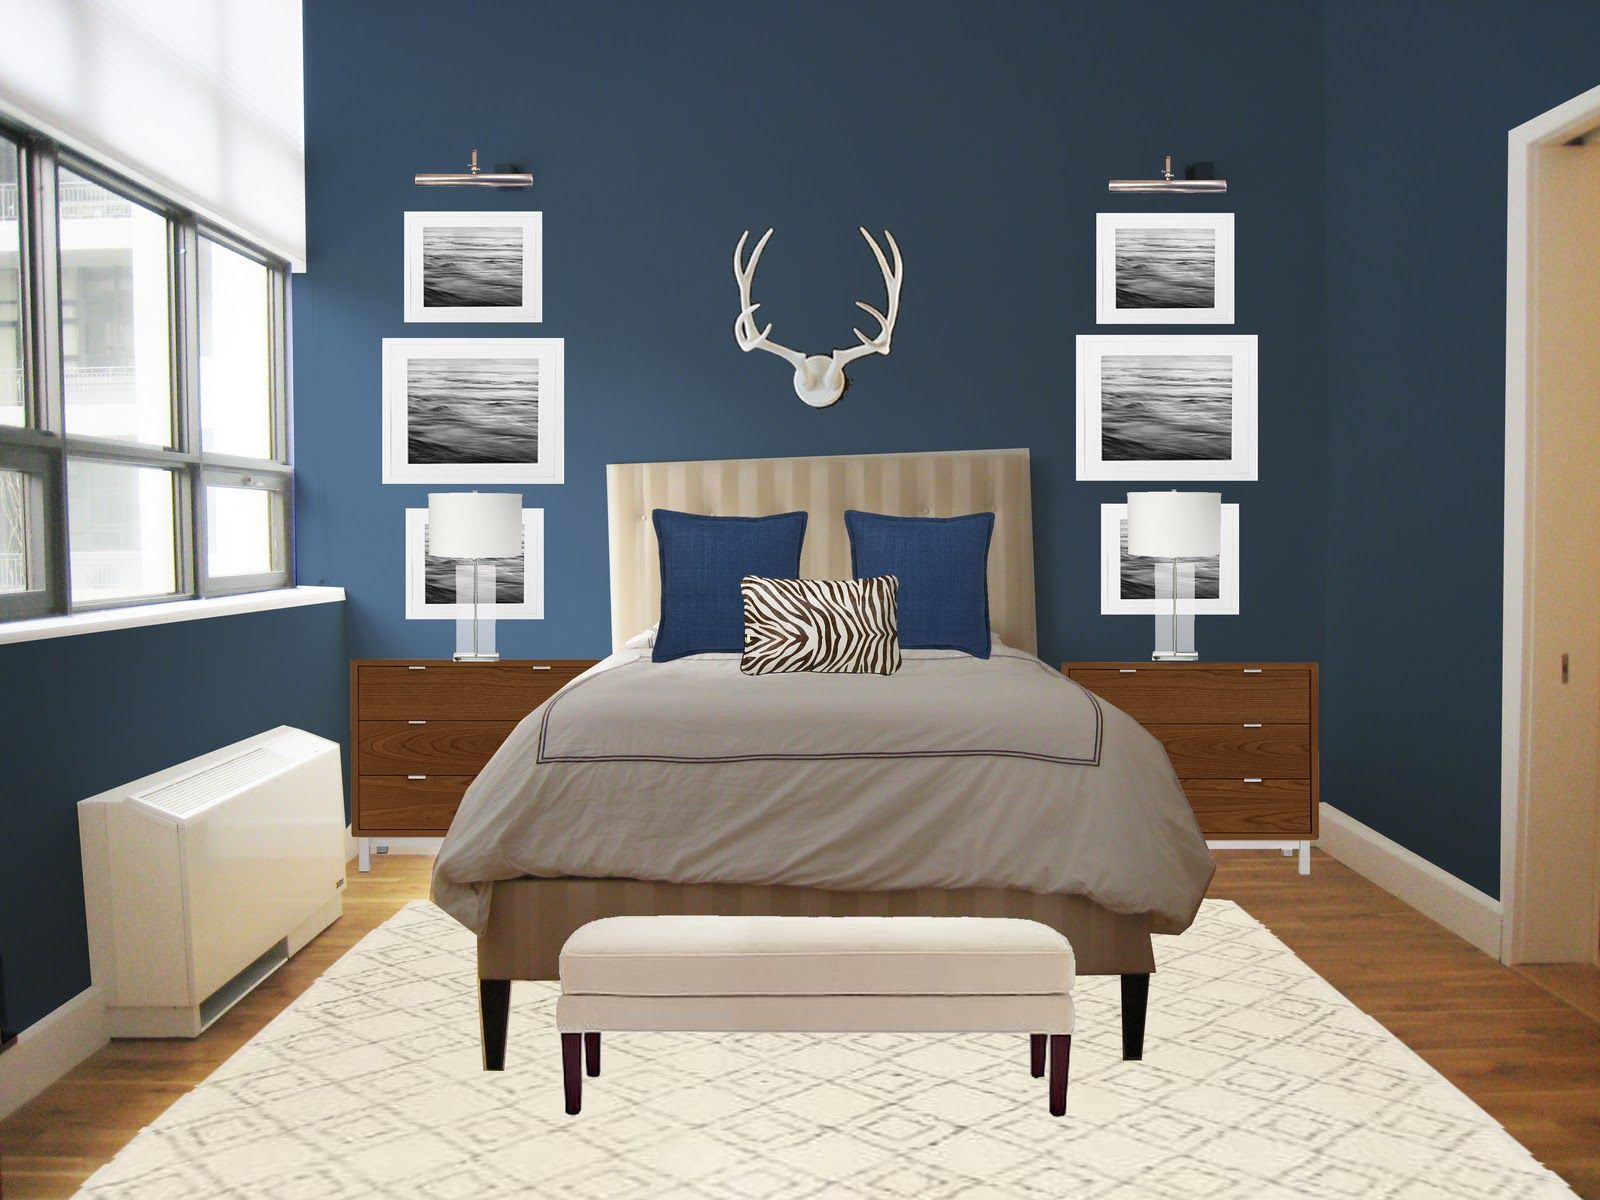 fabulous grey comforter queen bed sheet also cool artwork wall